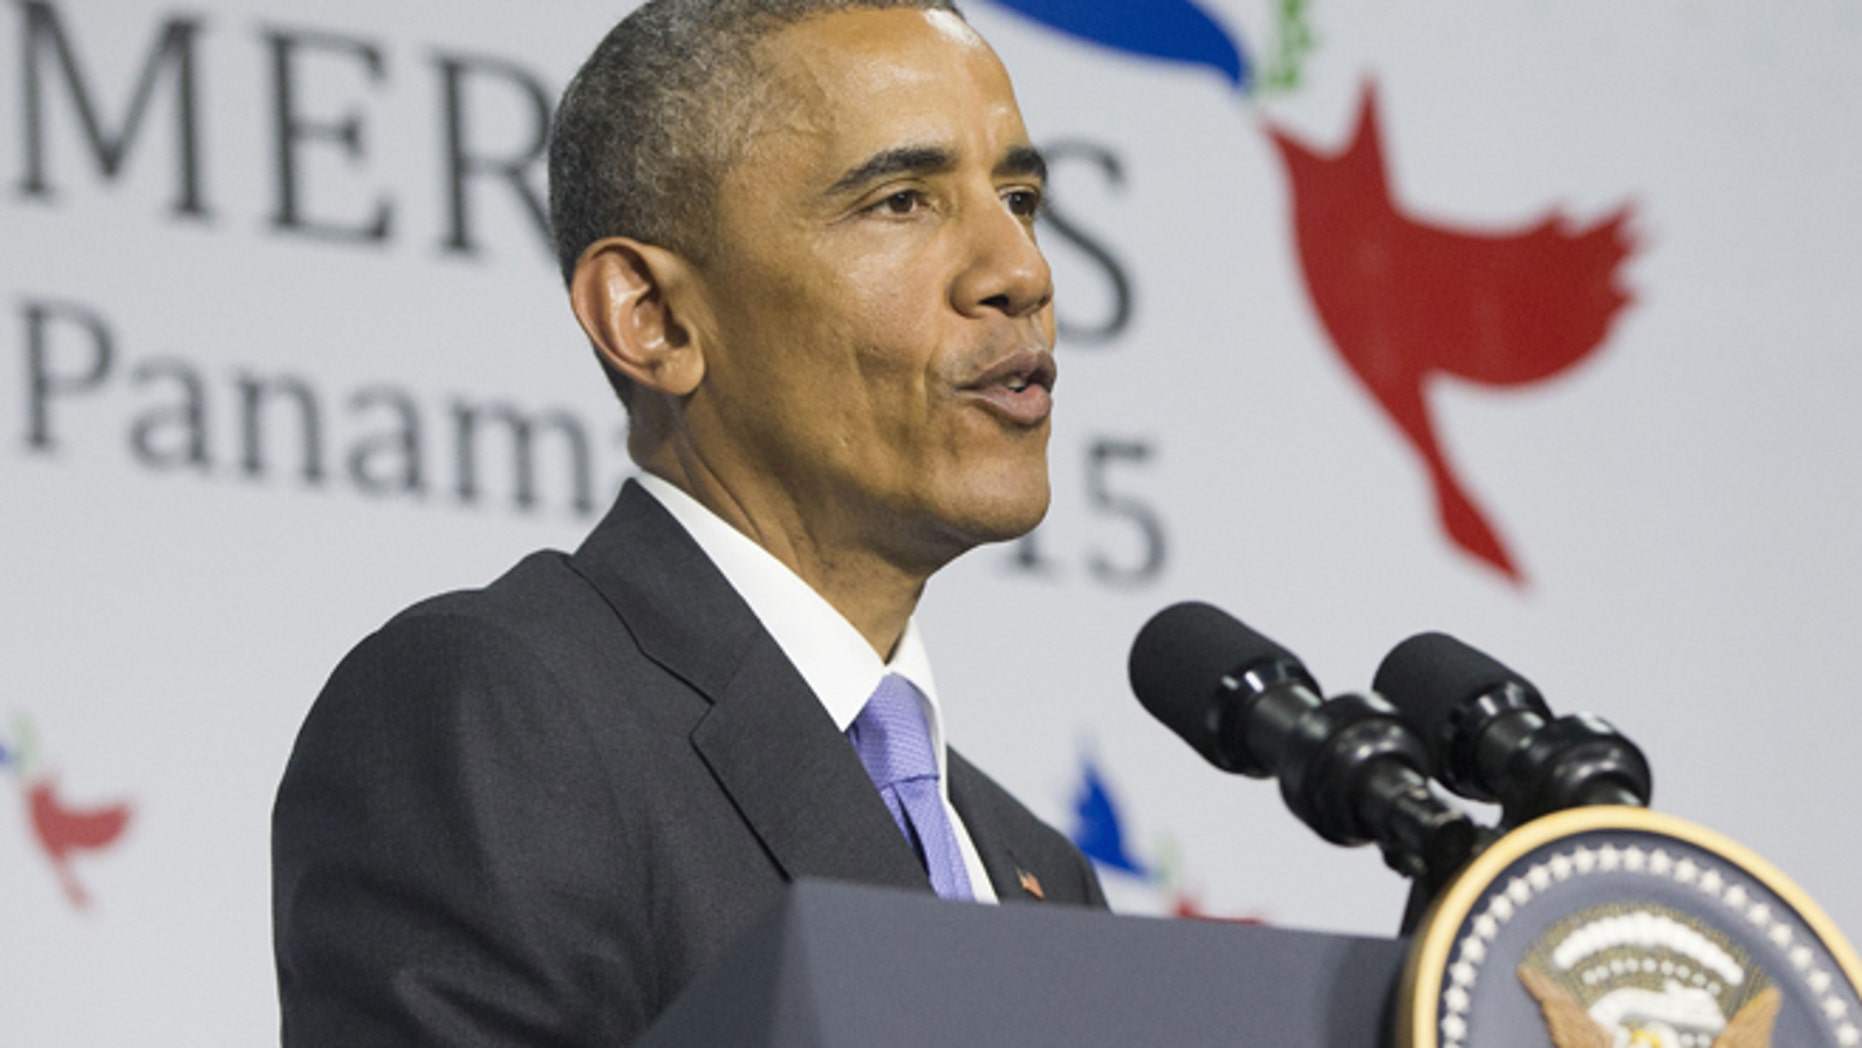 Apr. 11, 2015: President Obama speaks during his news conference at the Summit of the Americas in Panama City. (AP)